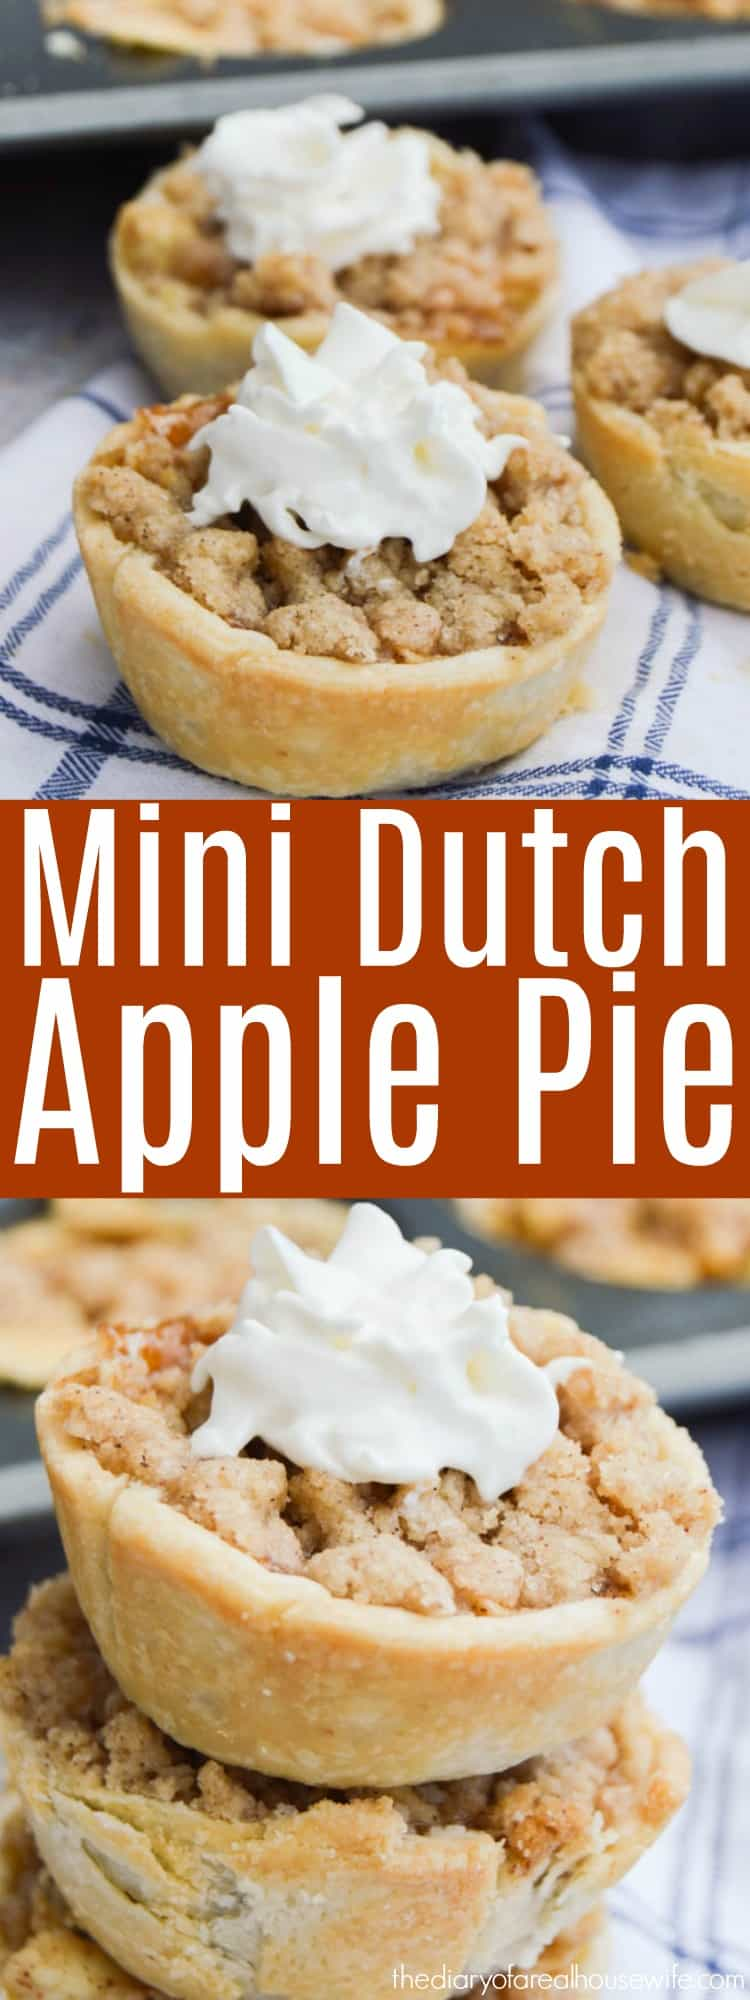 Mini Dutch Apple Pie